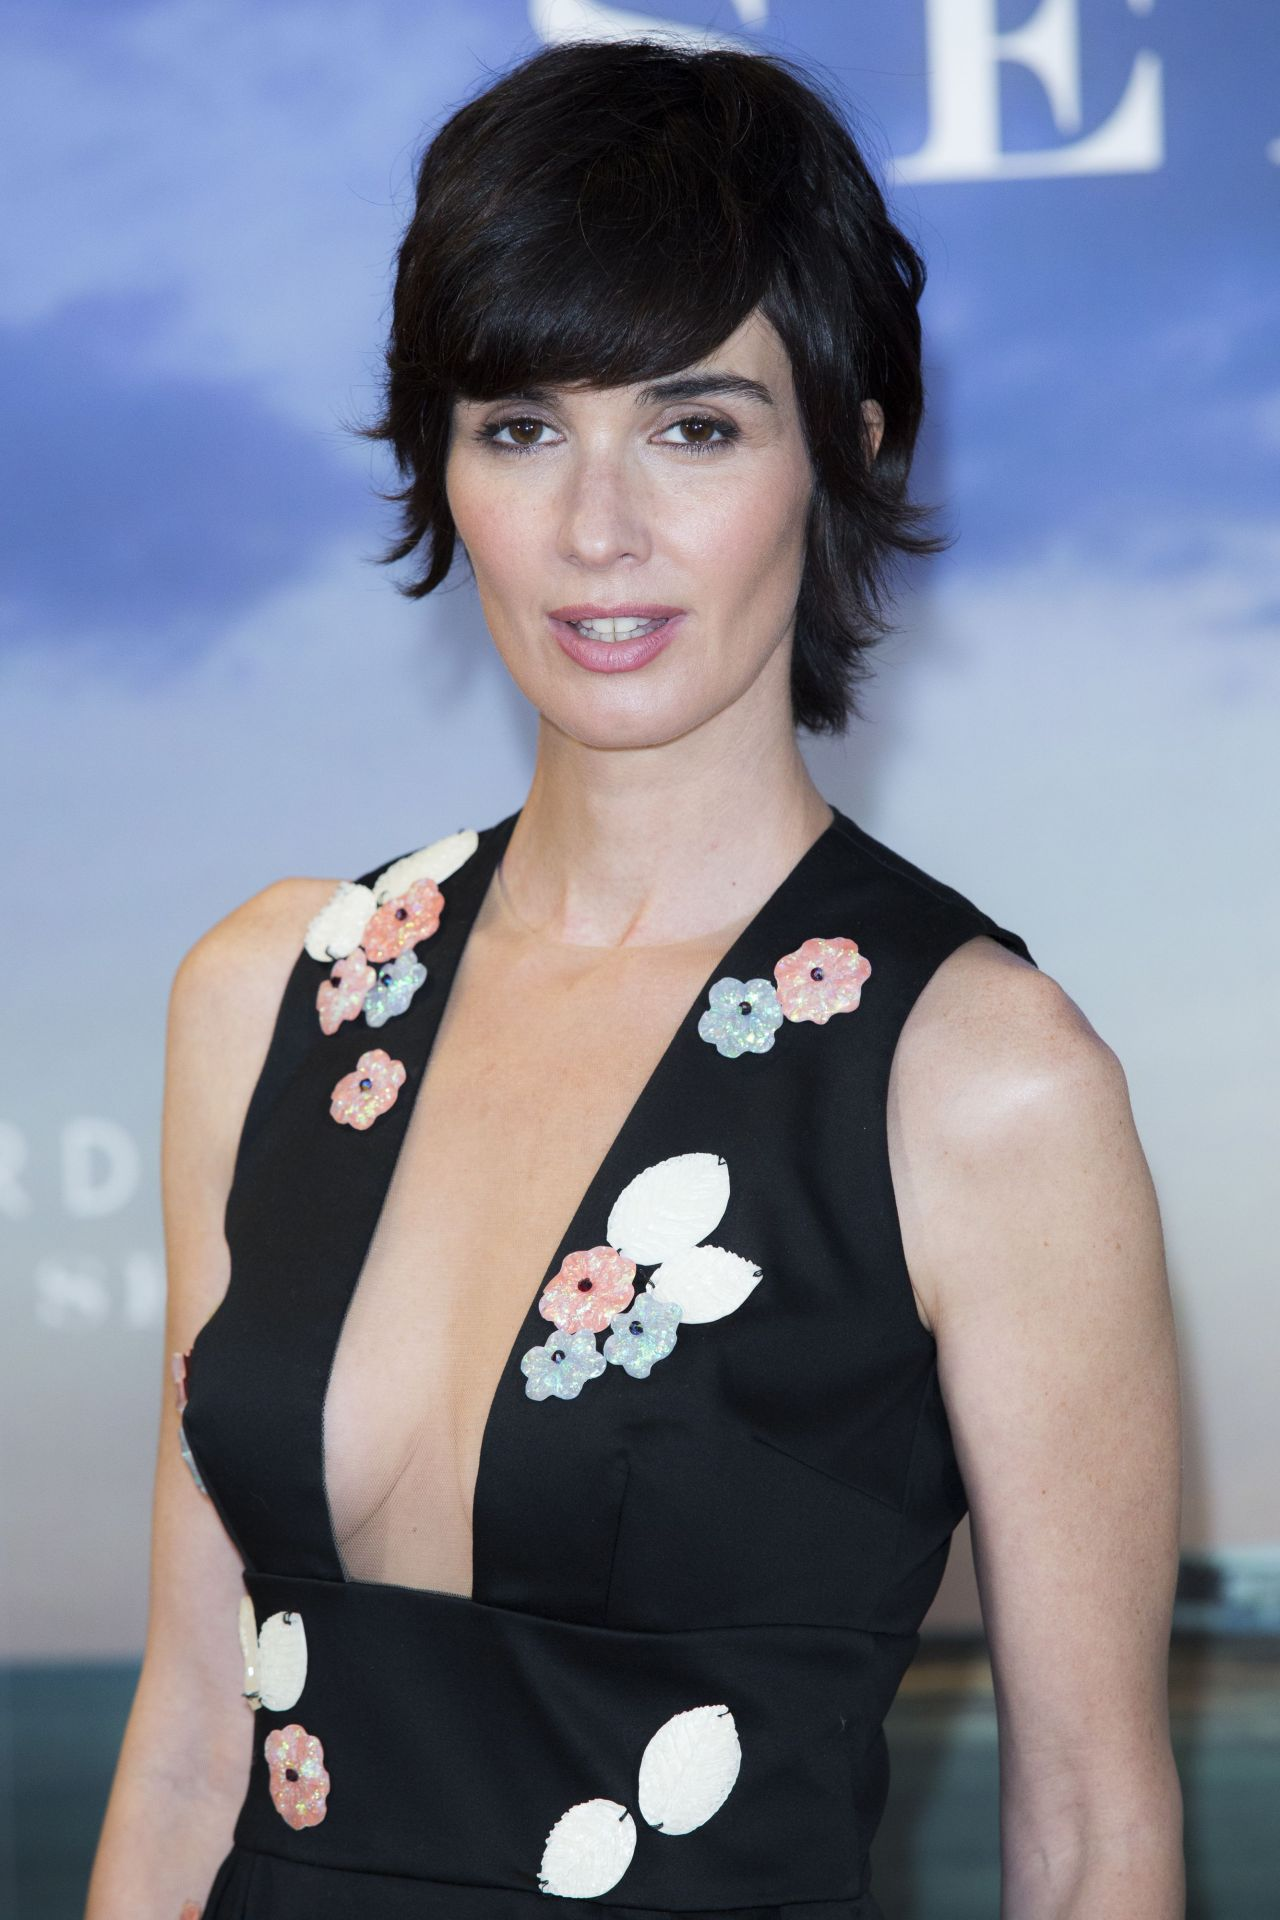 Paz Vega Quot Perdoname Senor Quot Tv Show Photocall In Madrid